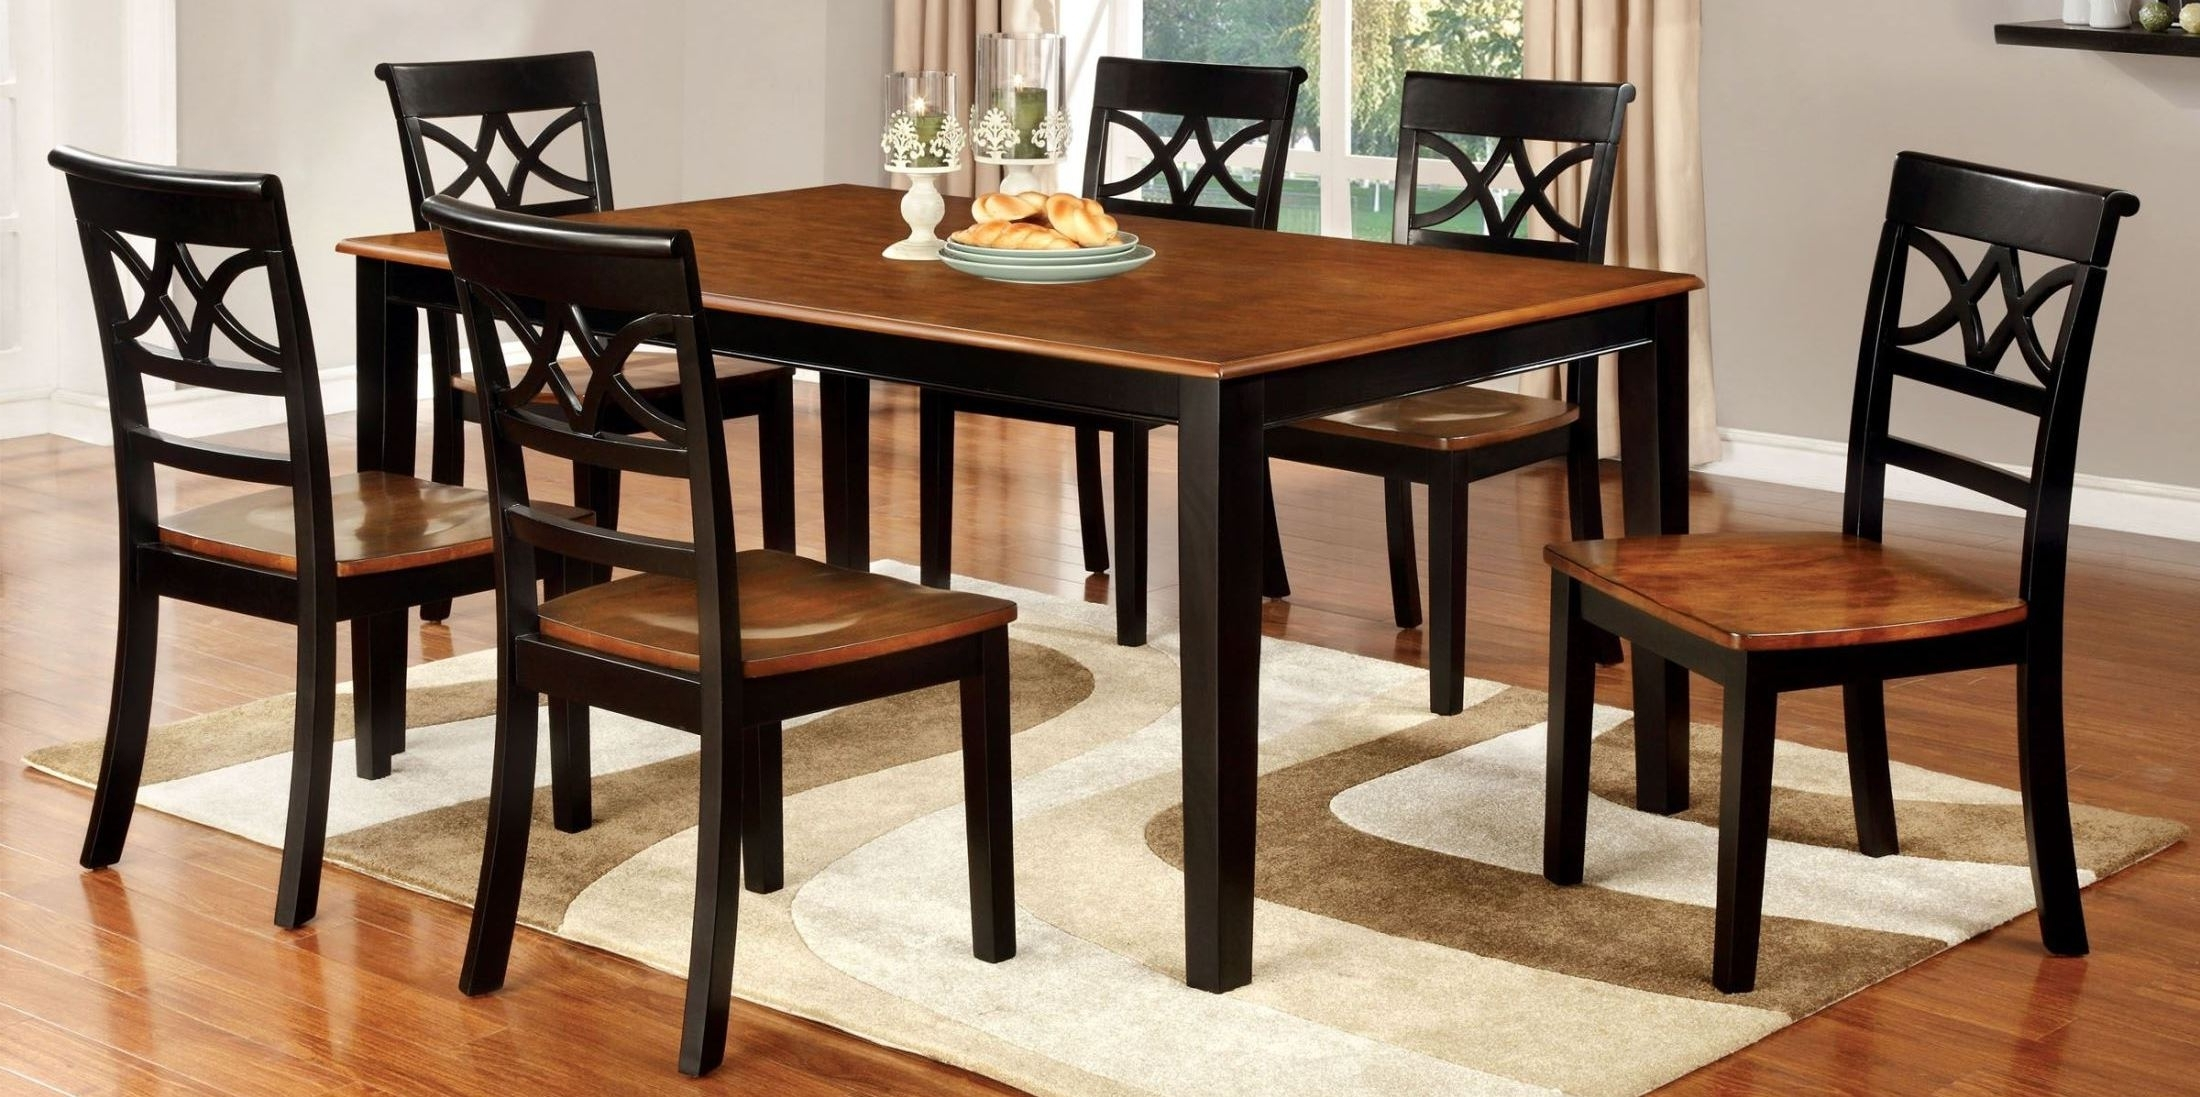 Craftsman 7 Piece Rectangle Extension Dining Sets With Arm & Side Chairs Intended For Well Known Furniture Of America Torrington Black And Cherry Rectangular (View 6 of 25)